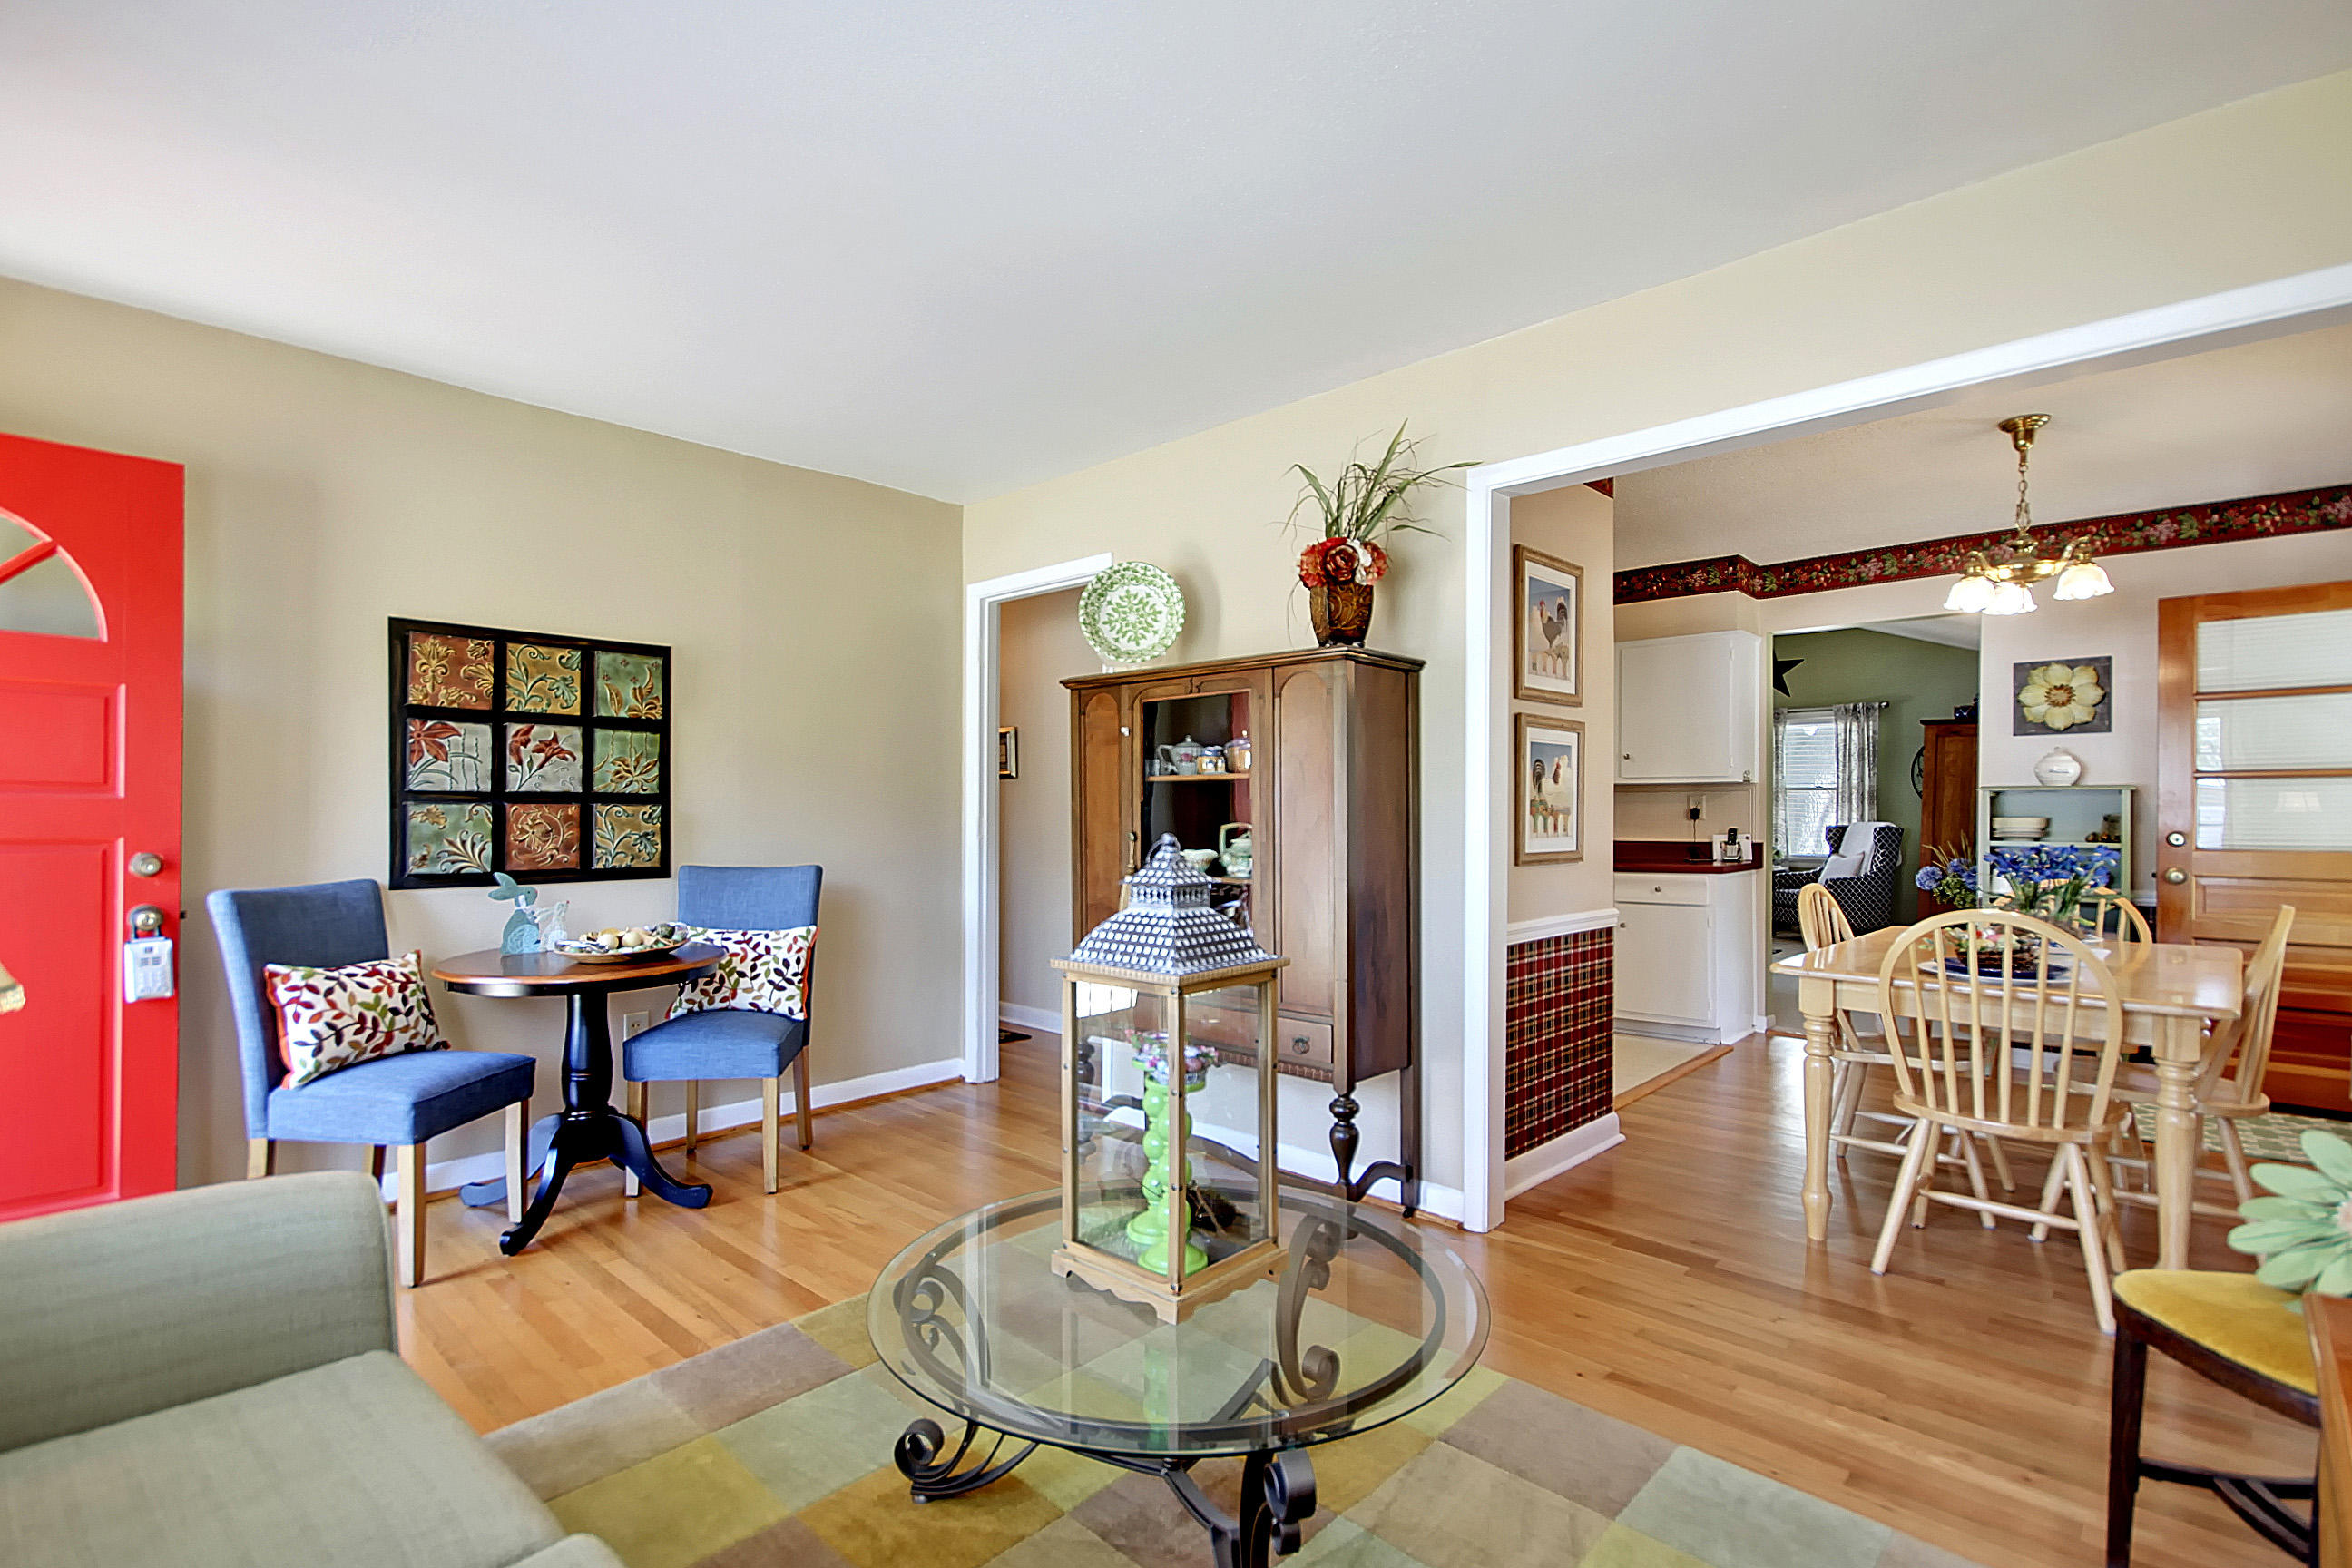 West Glow Homes For Sale - 1138 Crull, Charleston, SC - 19